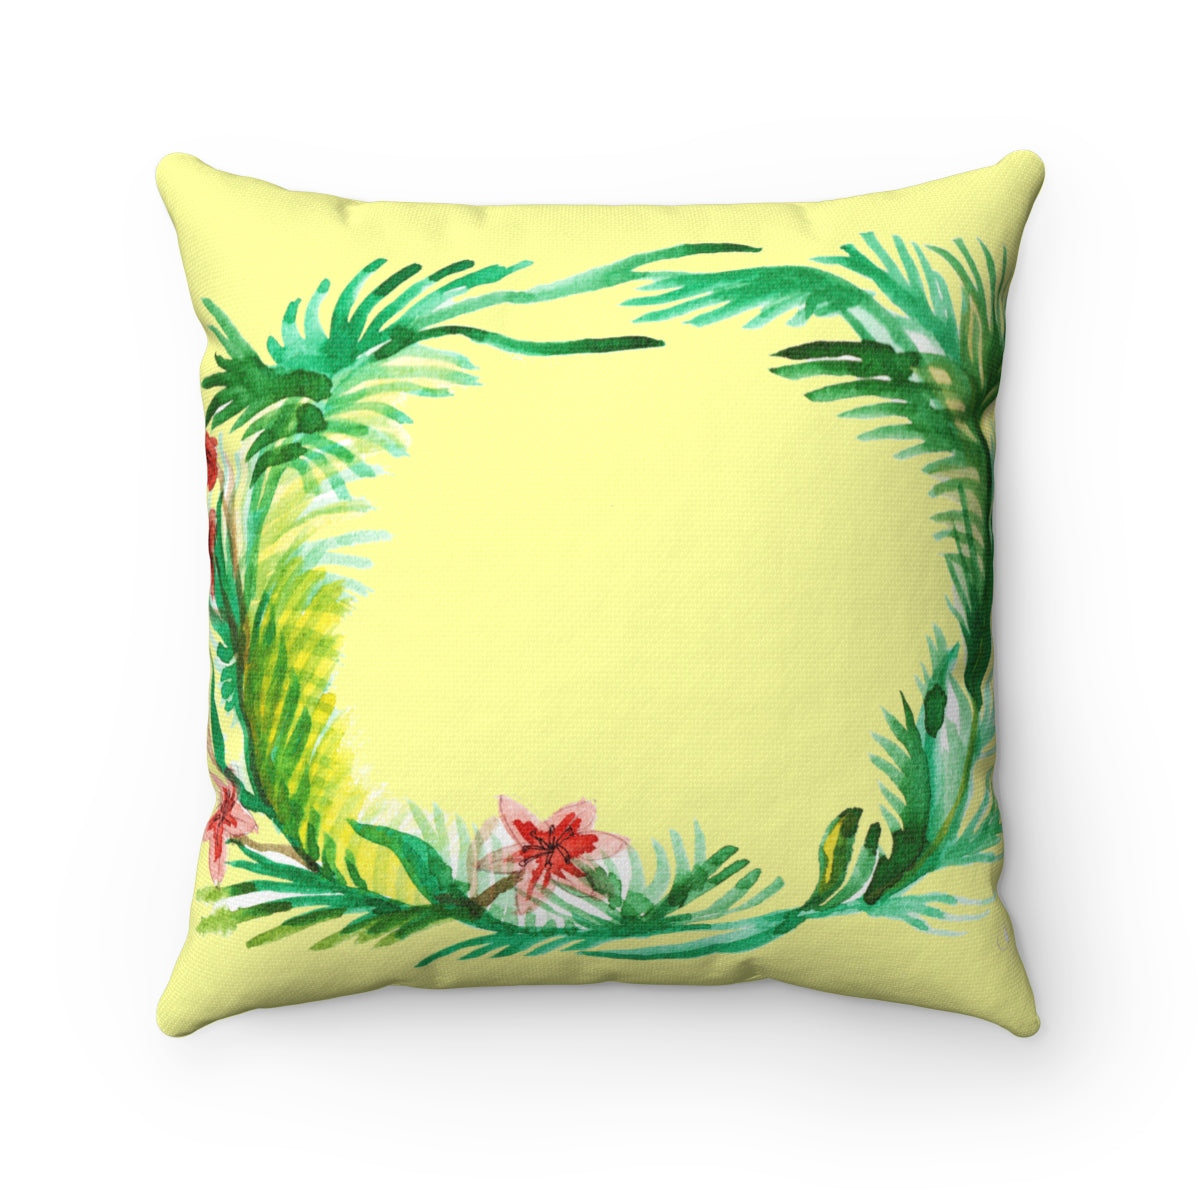 Cute Red and Yellow Floral Wreath Spun Polyester Square Pillow - Made in USA-Pillow-14x14-Heidi Kimura Art LLC